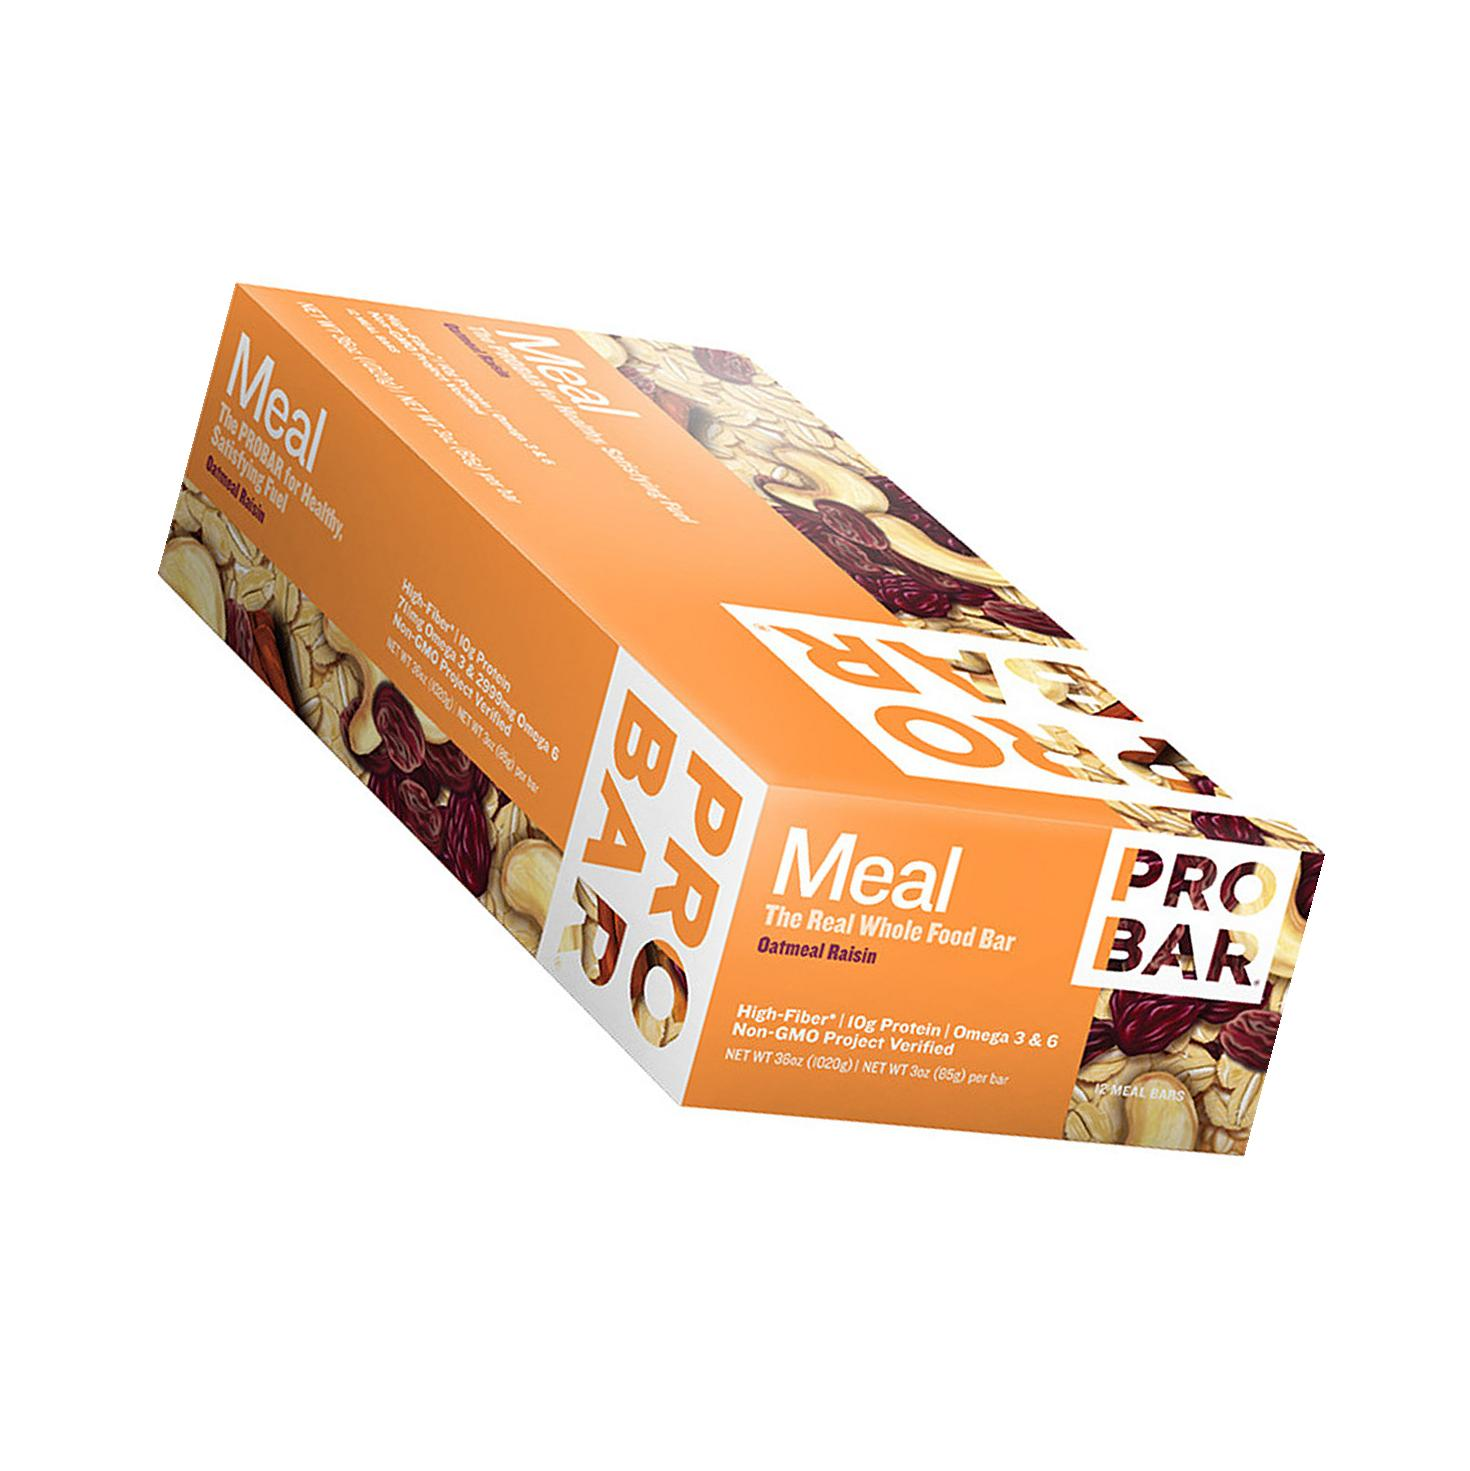 Meal Bar - Organic - Strawberry Bliss - 3 Oz - 1 Case